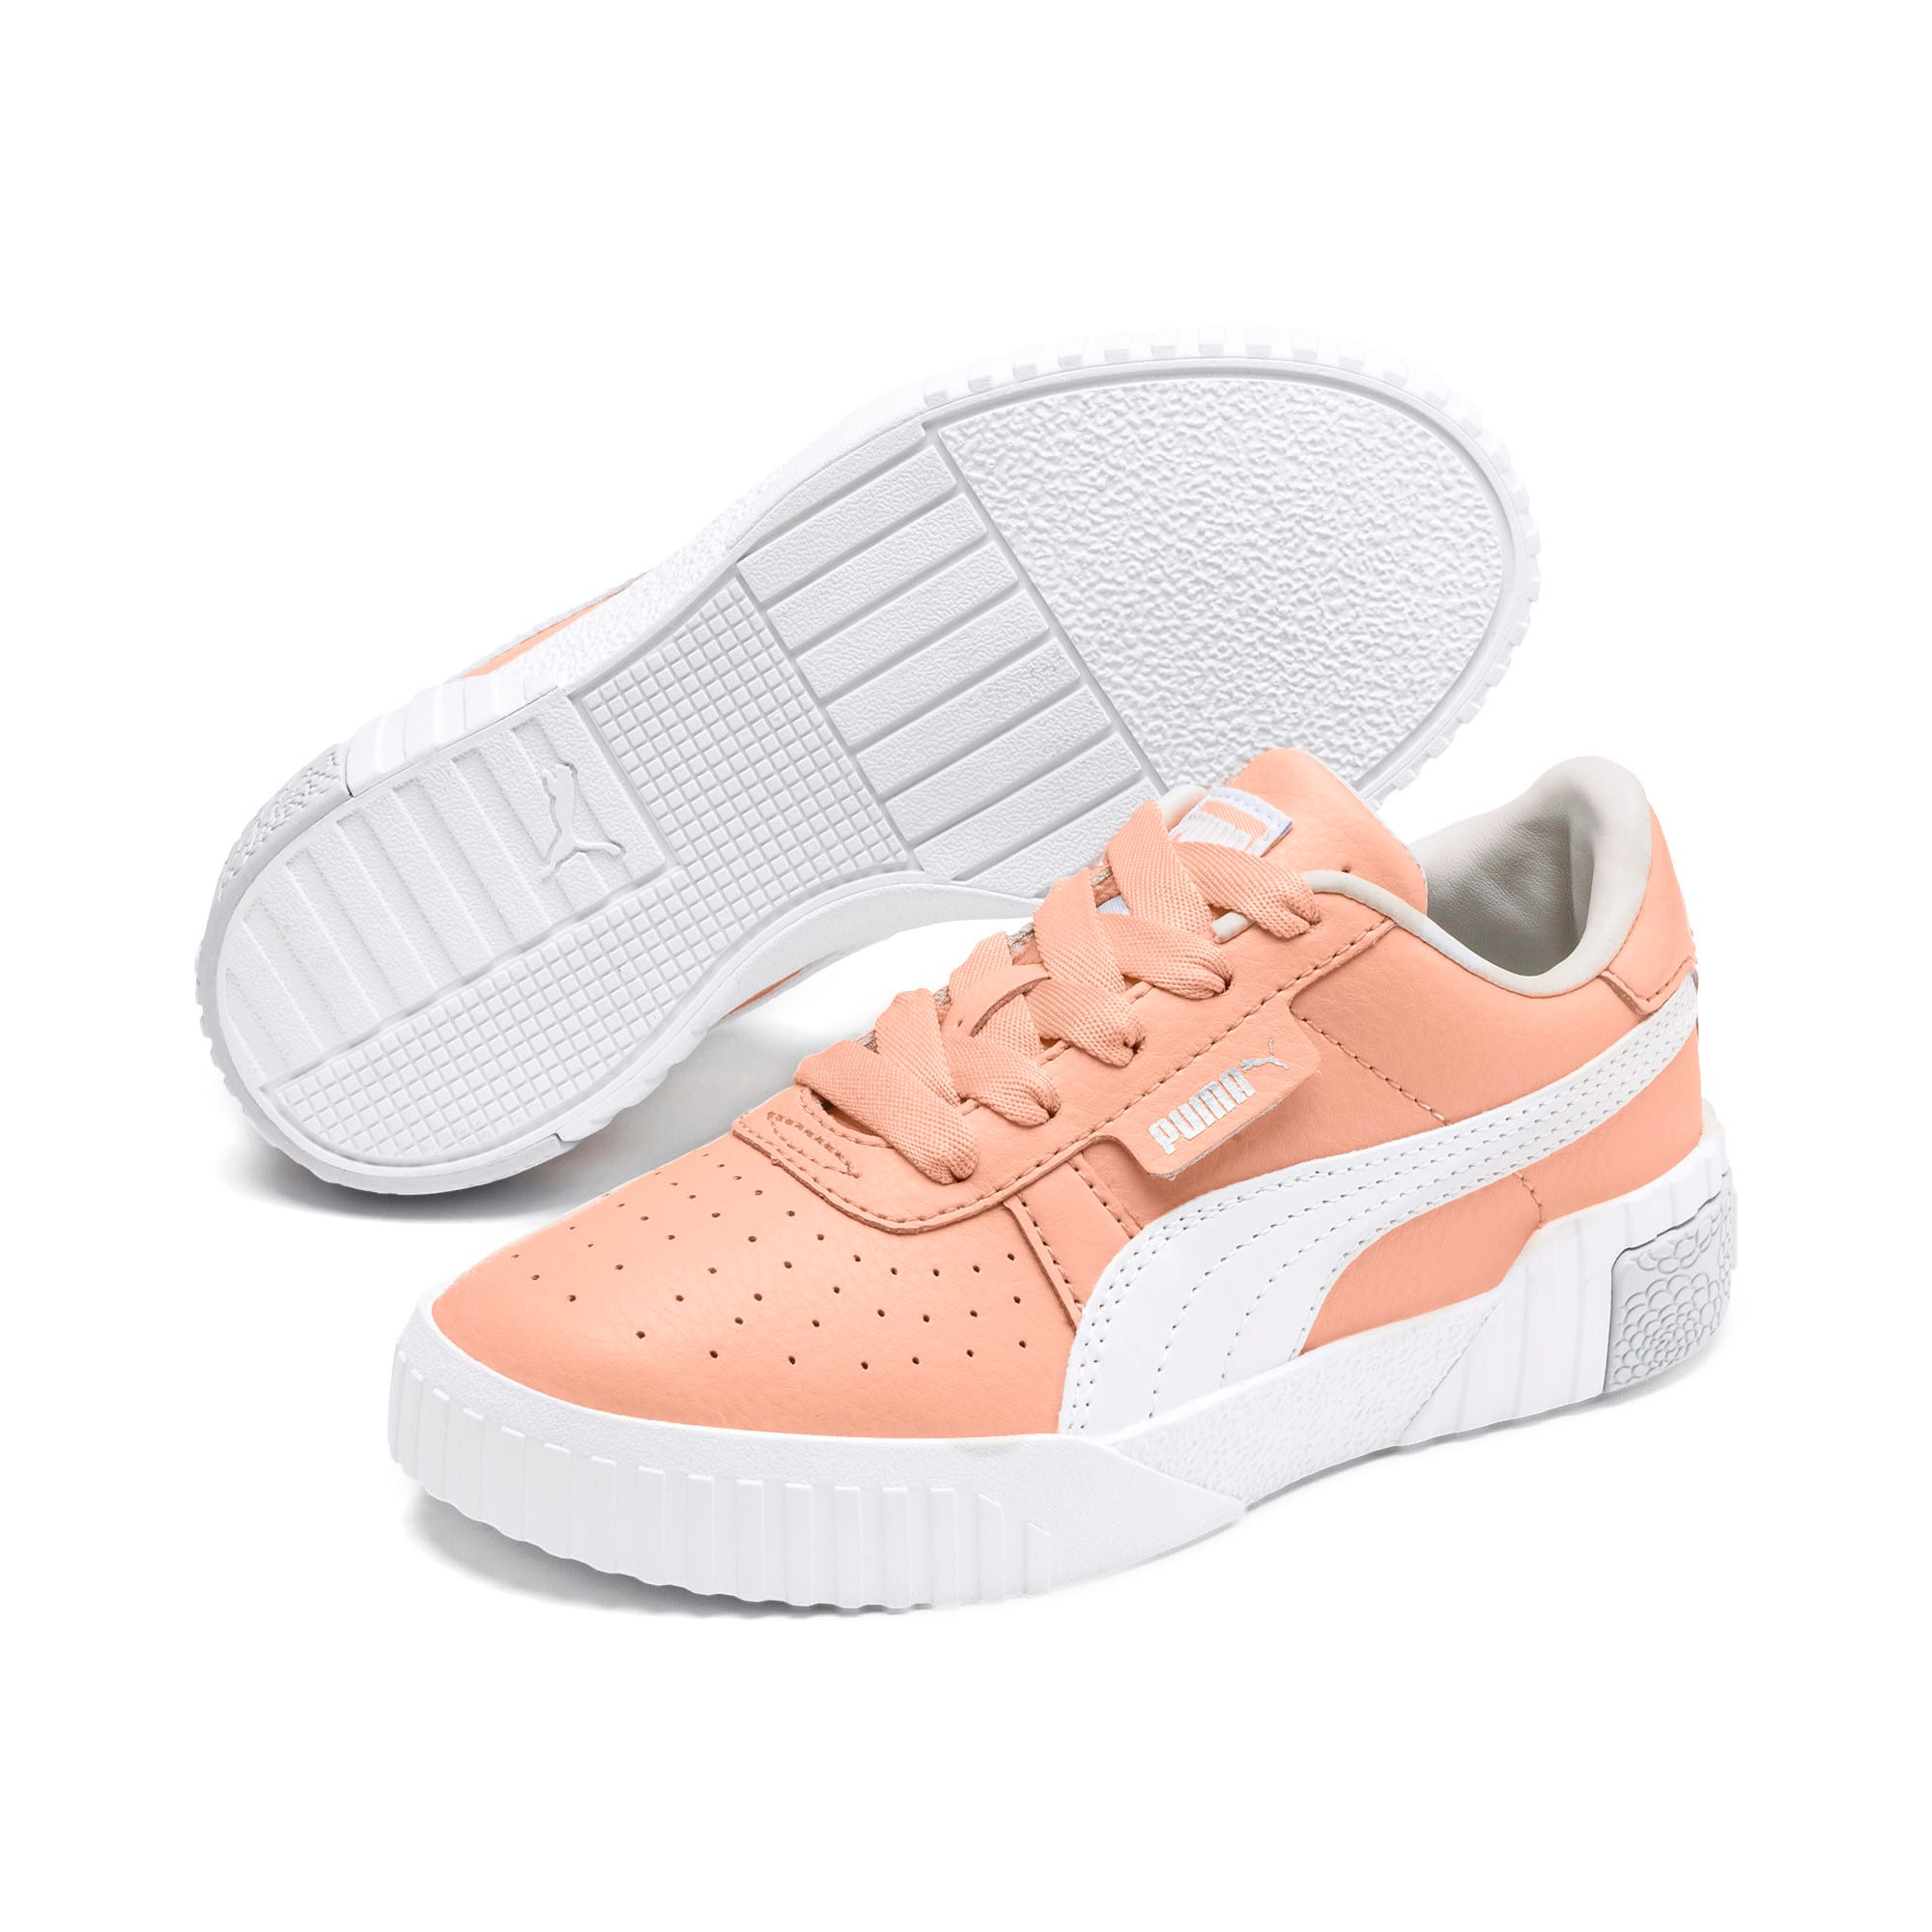 Thumbnail 2 of Cali Girls' Trainers, Peach Parfait-Heather, medium